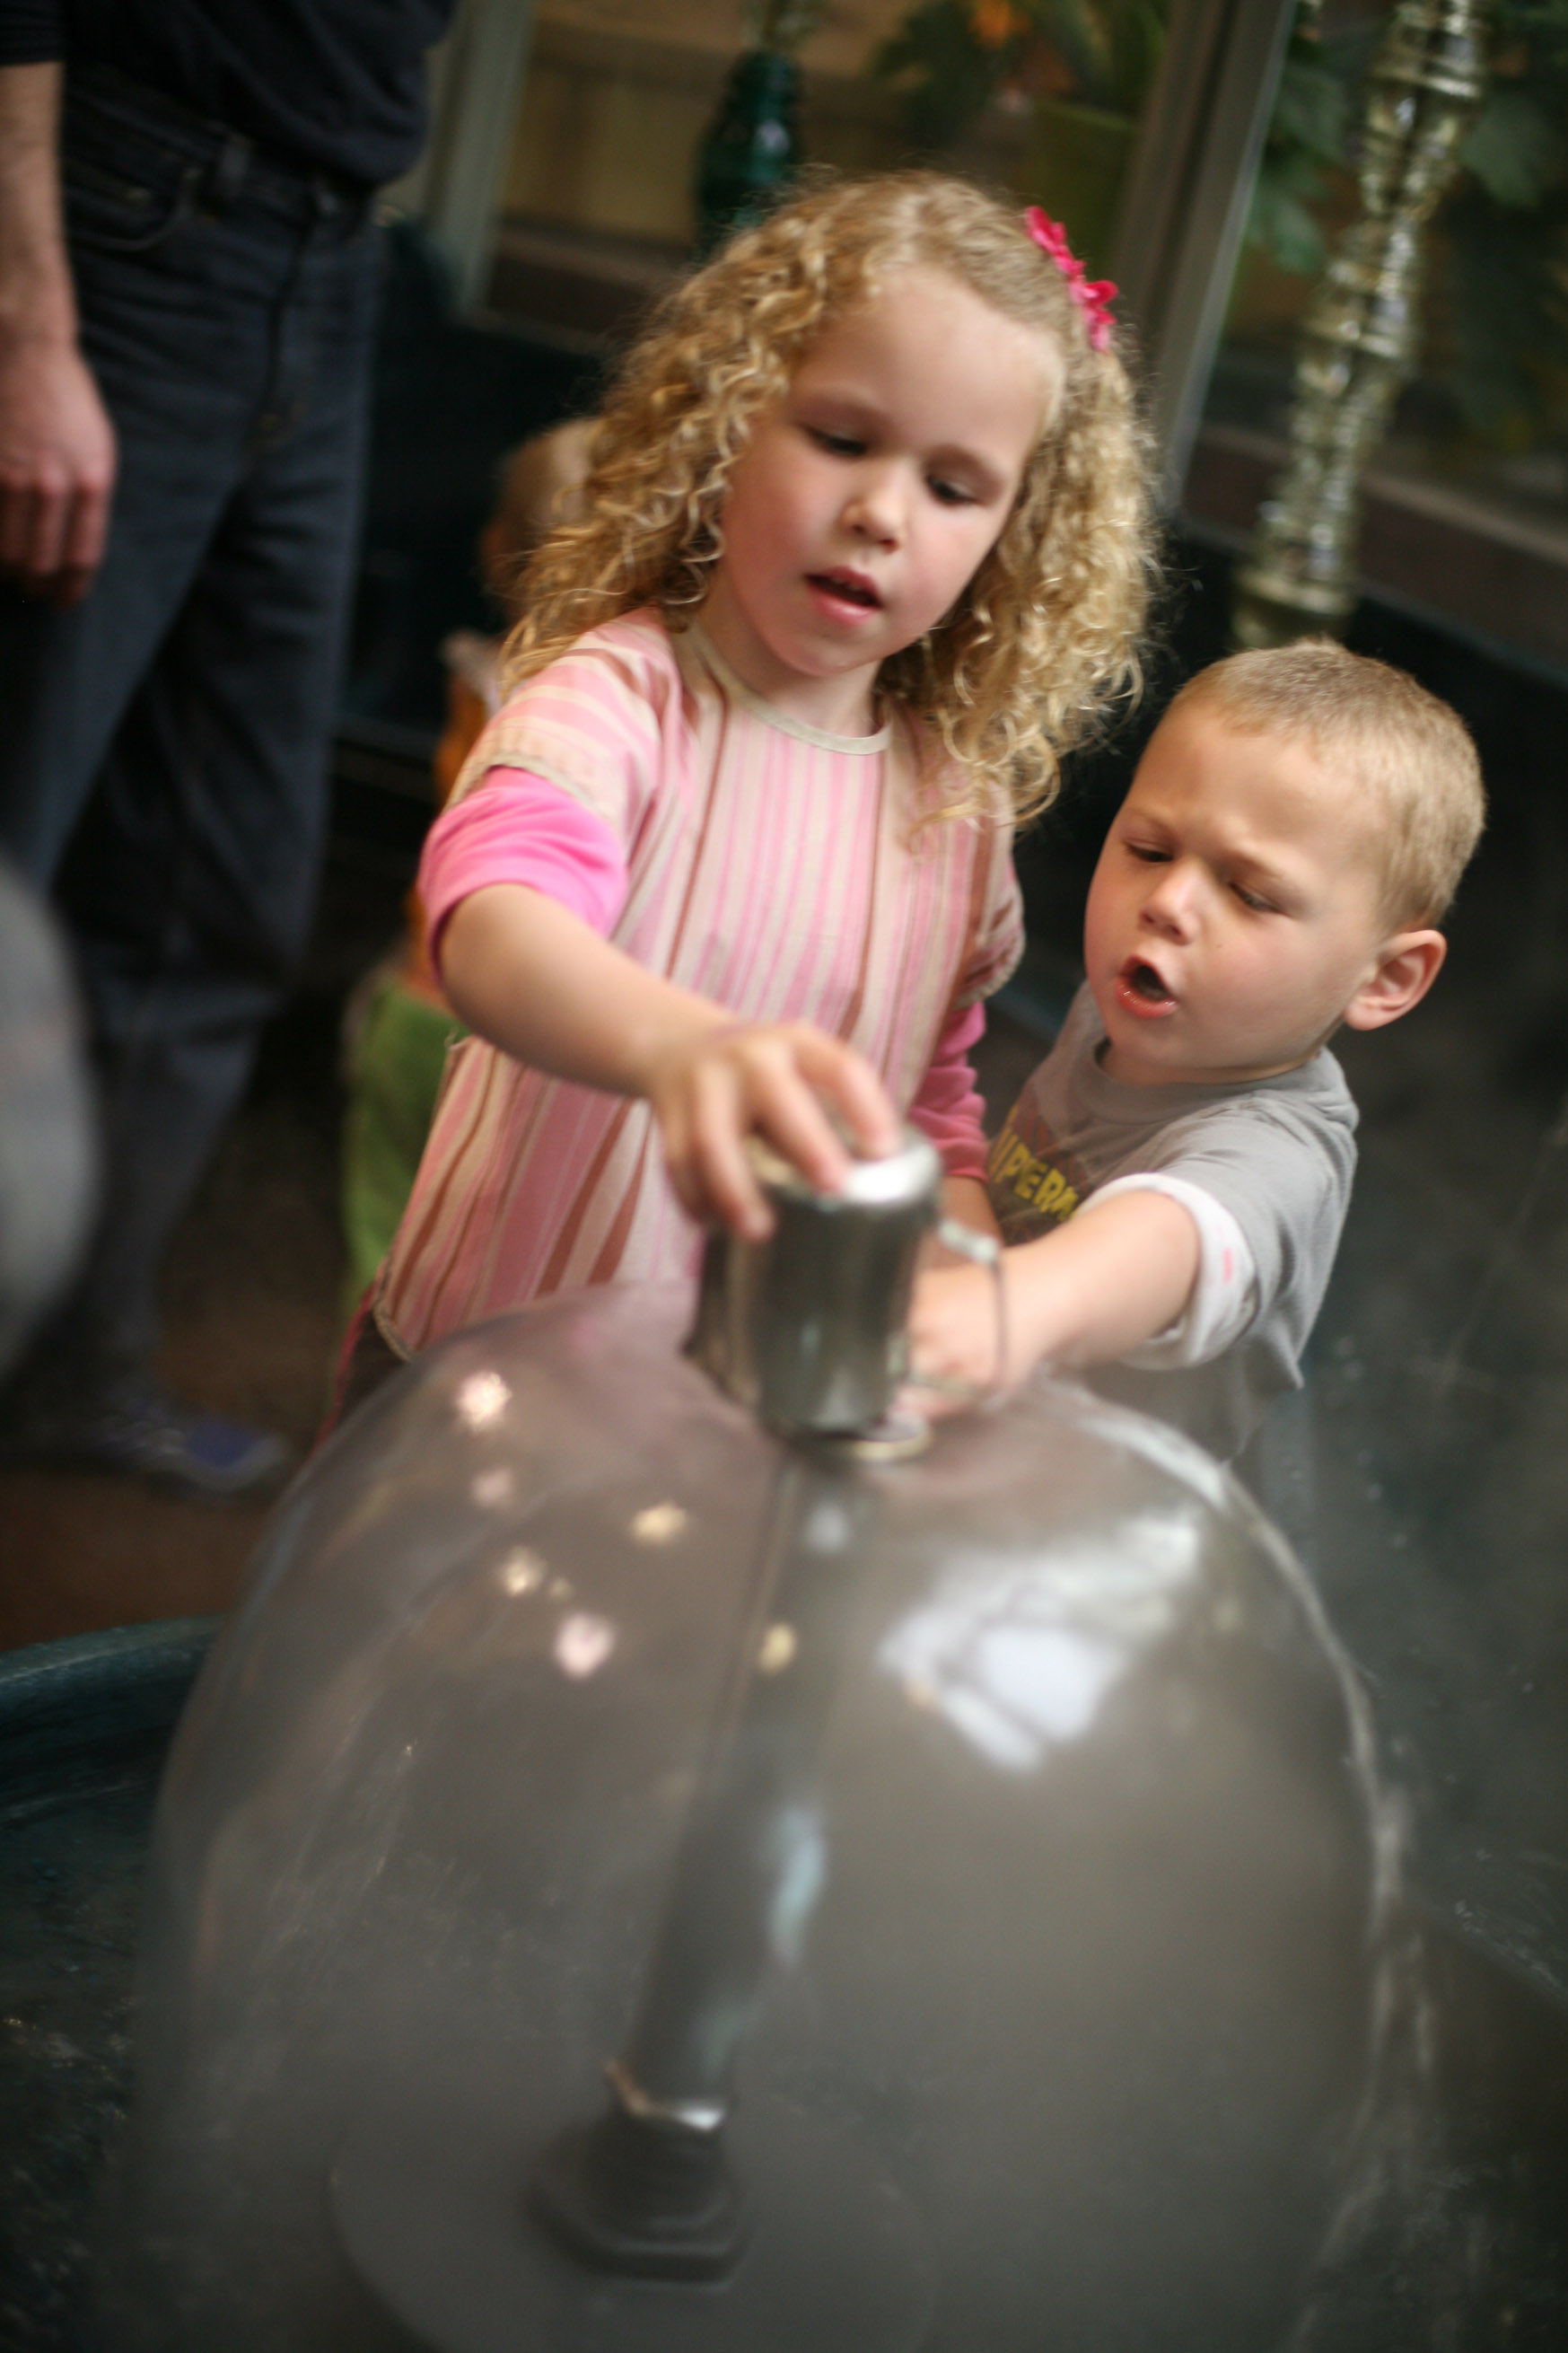 2 kids participating in an exhibit at the Madison Children's Museum in WI